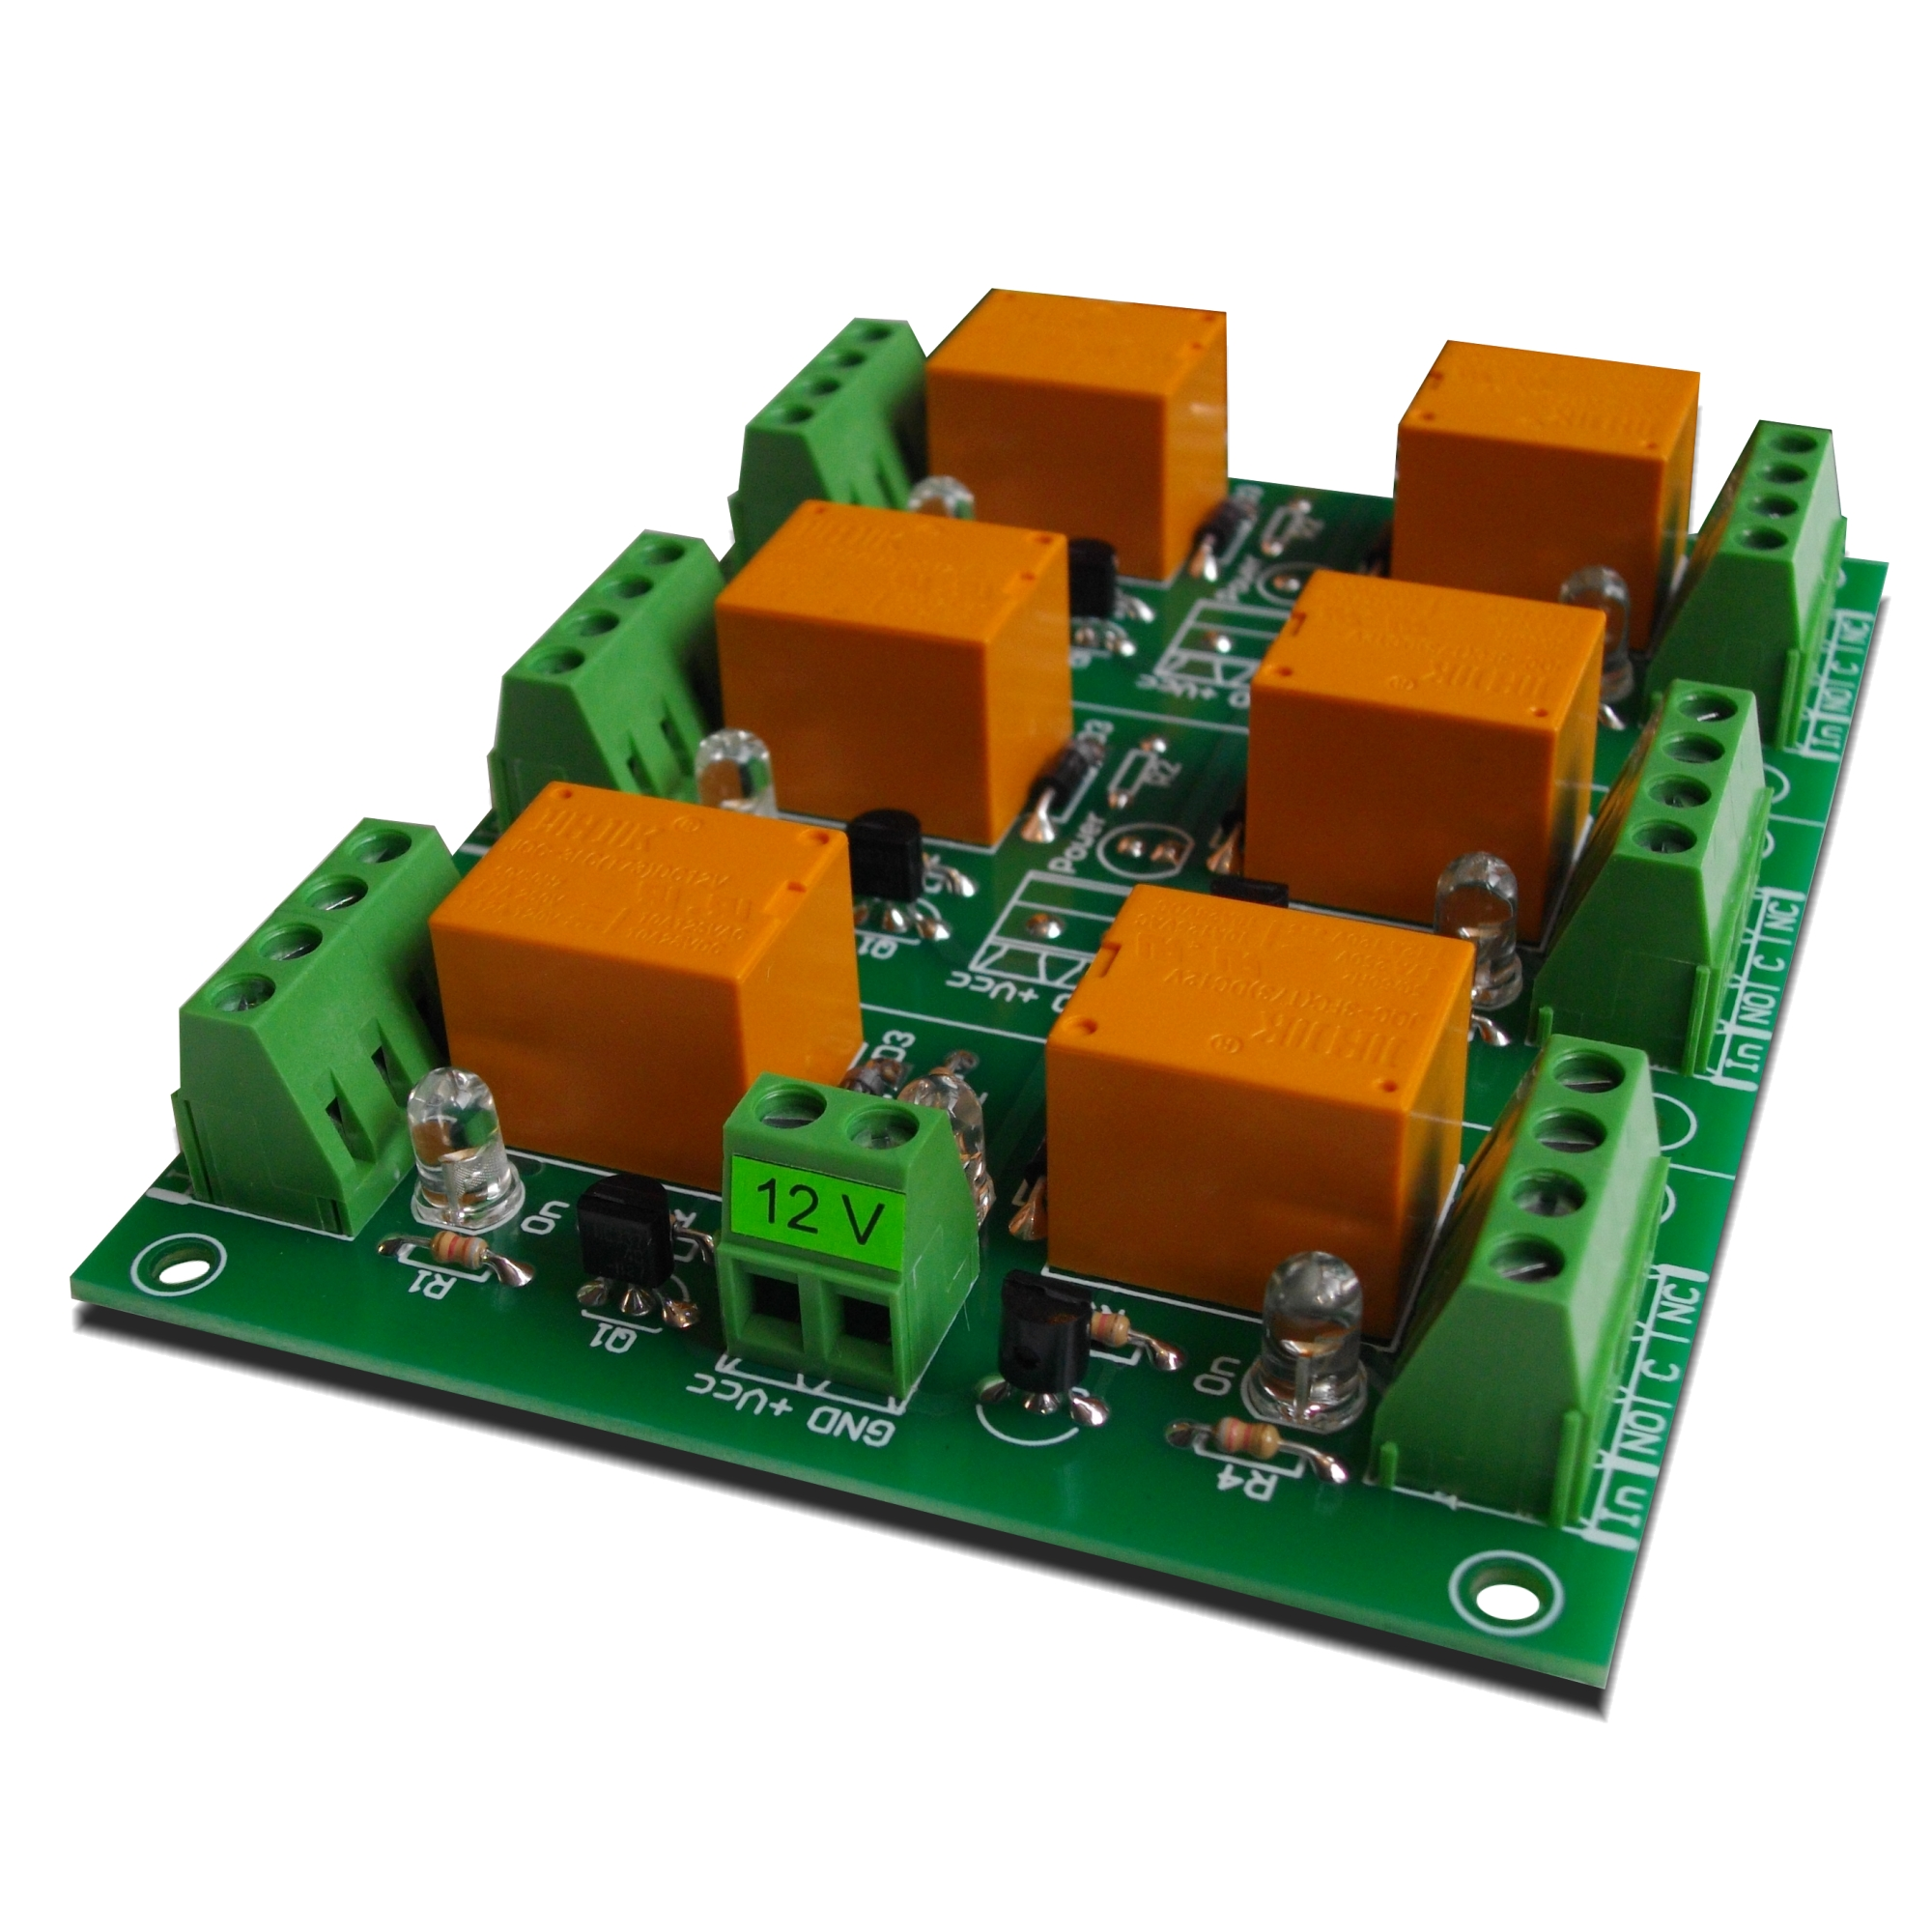 Or It Will Trigger The Relay That Will Supply Full Power To The Clone